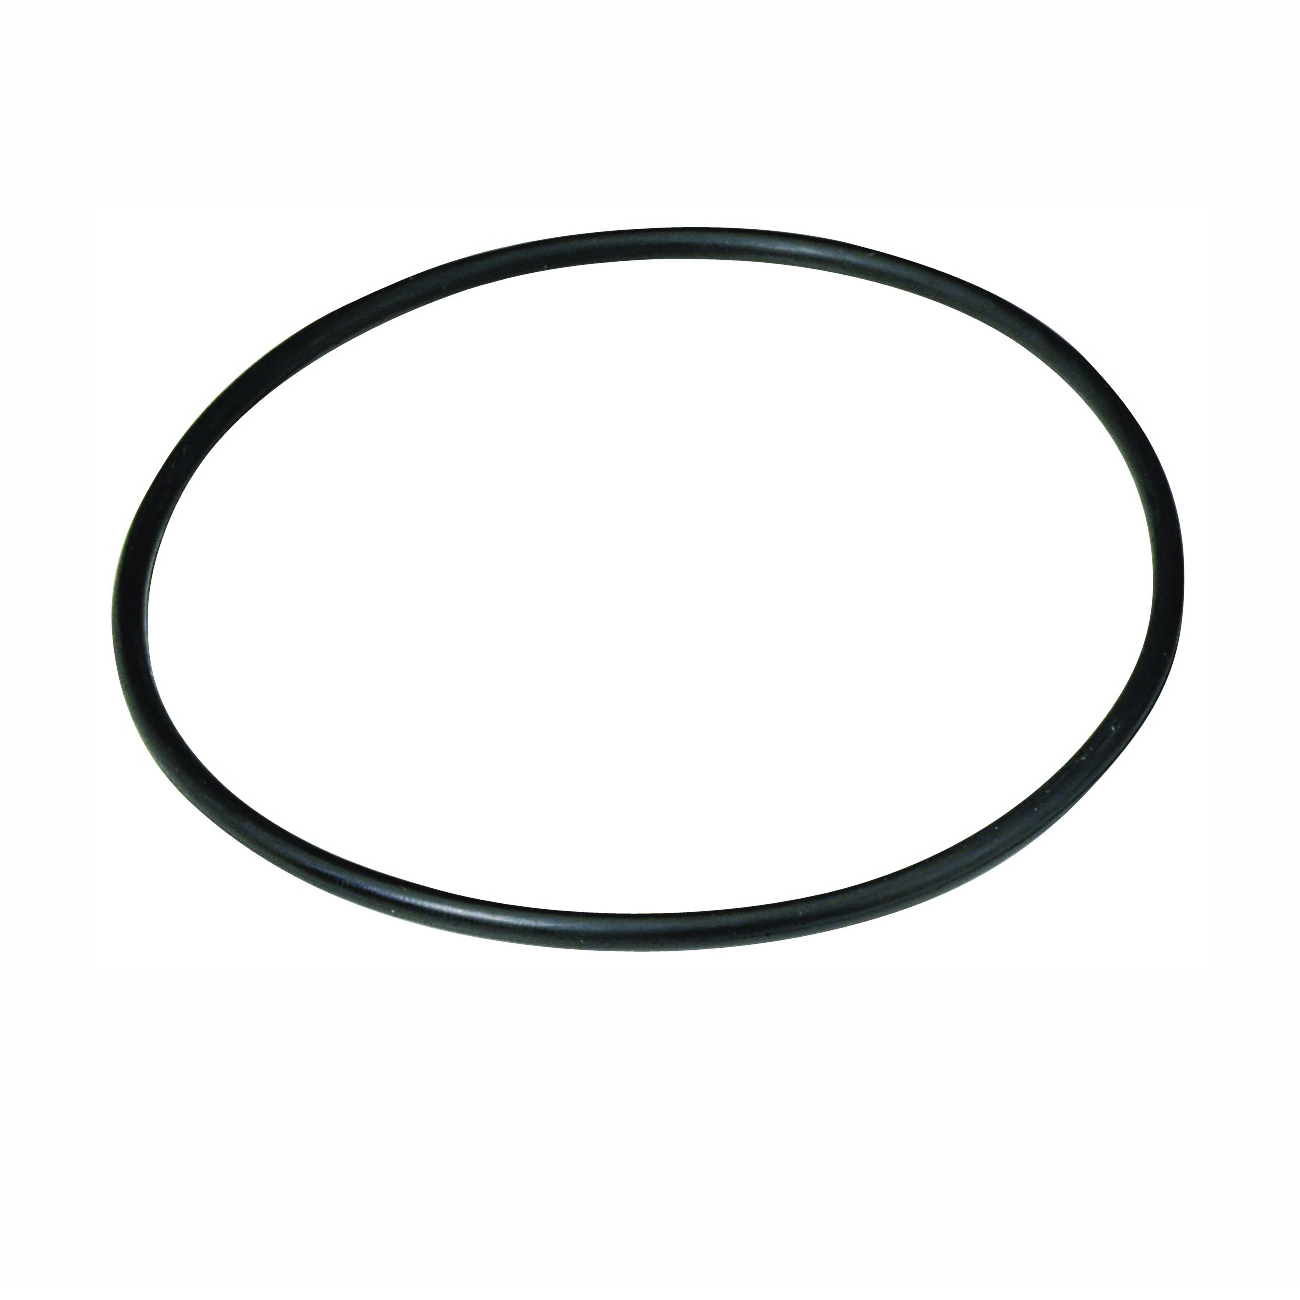 Picture of Culligan OR-34A Filter Housing O-Ring, Rubber, Black, For: HF-150, HF-160, HF-360, 45025, 46764, 49560 Water Filters